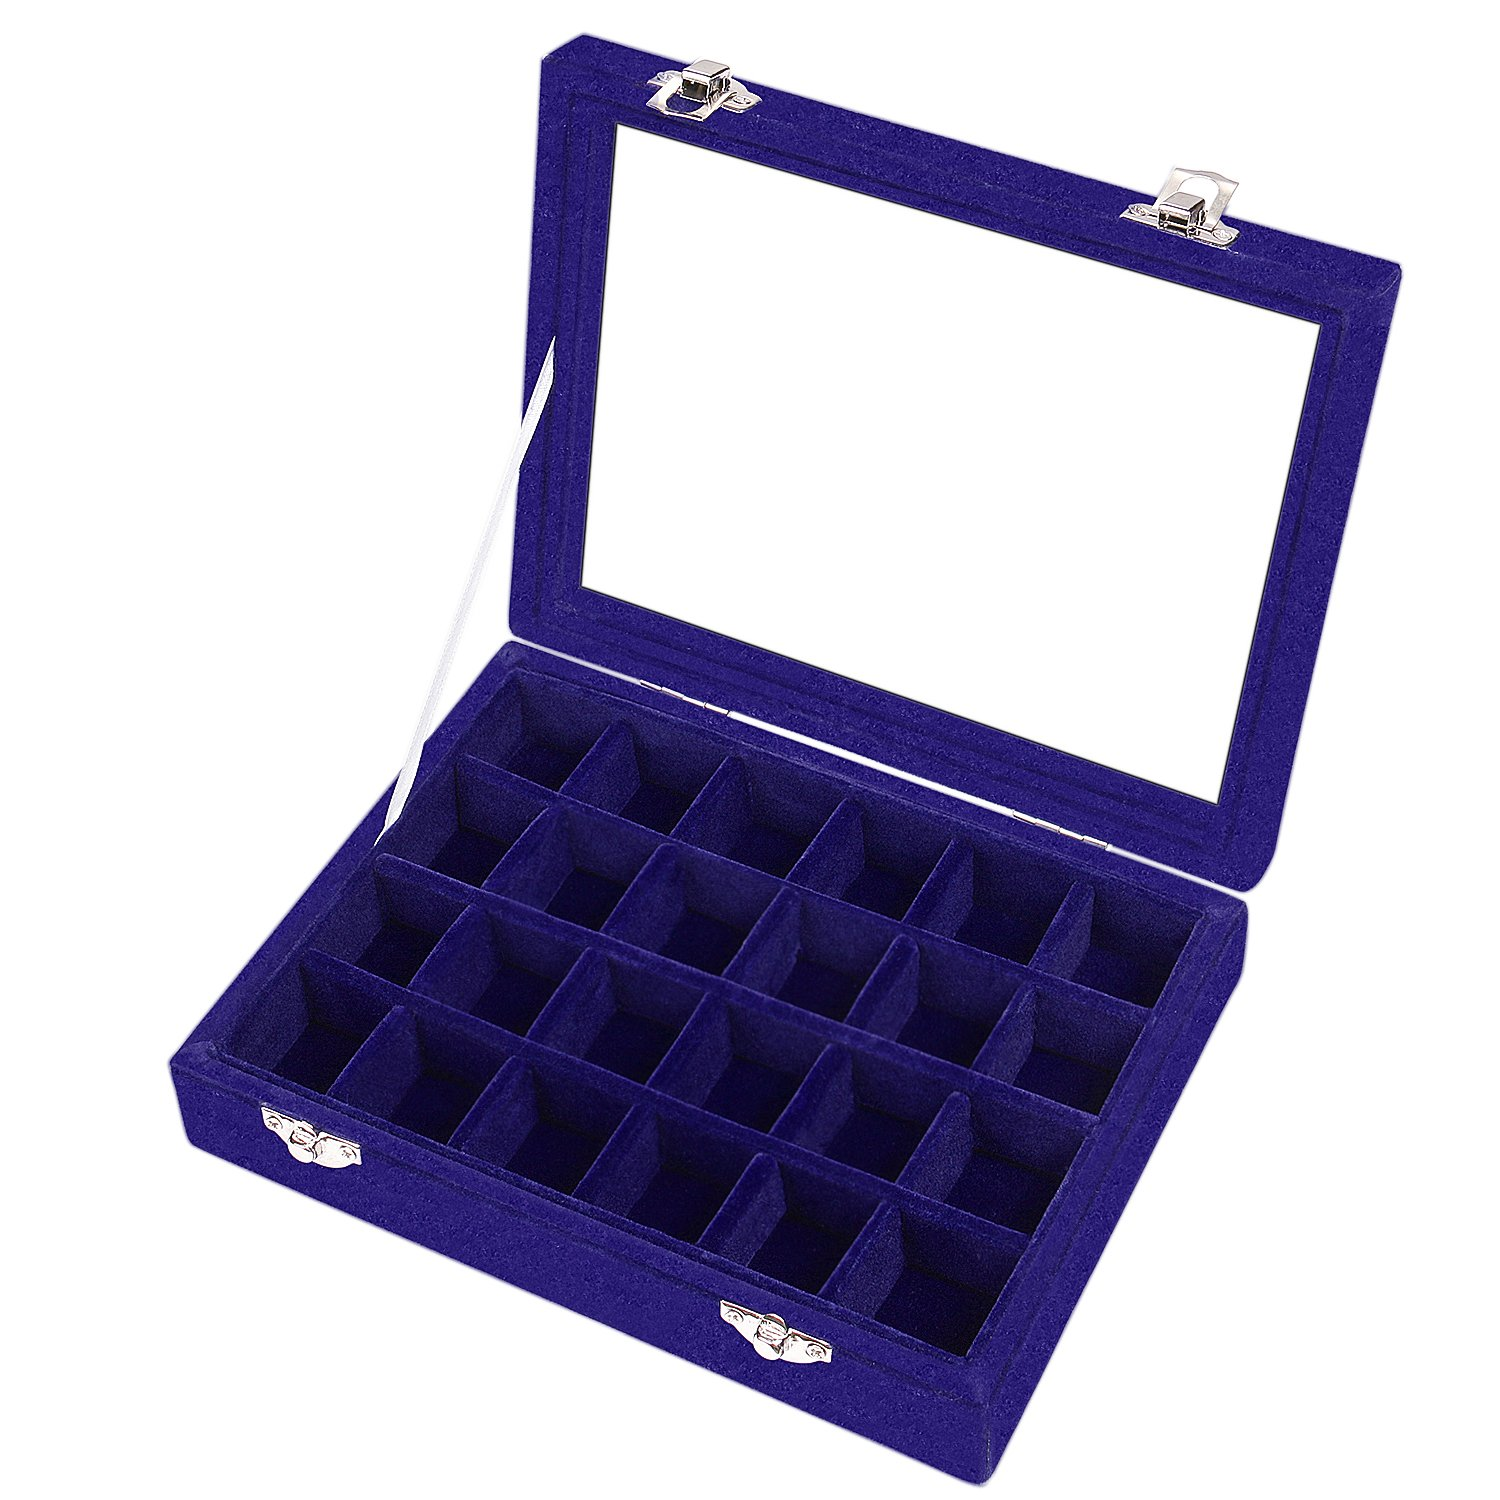 Basuwell 24 Grid Velvet Jewelry Tray for Drawers Glass Clear Lid Showcase Display Storage Ring Trays Holder Earrings Organizer Case-Blue